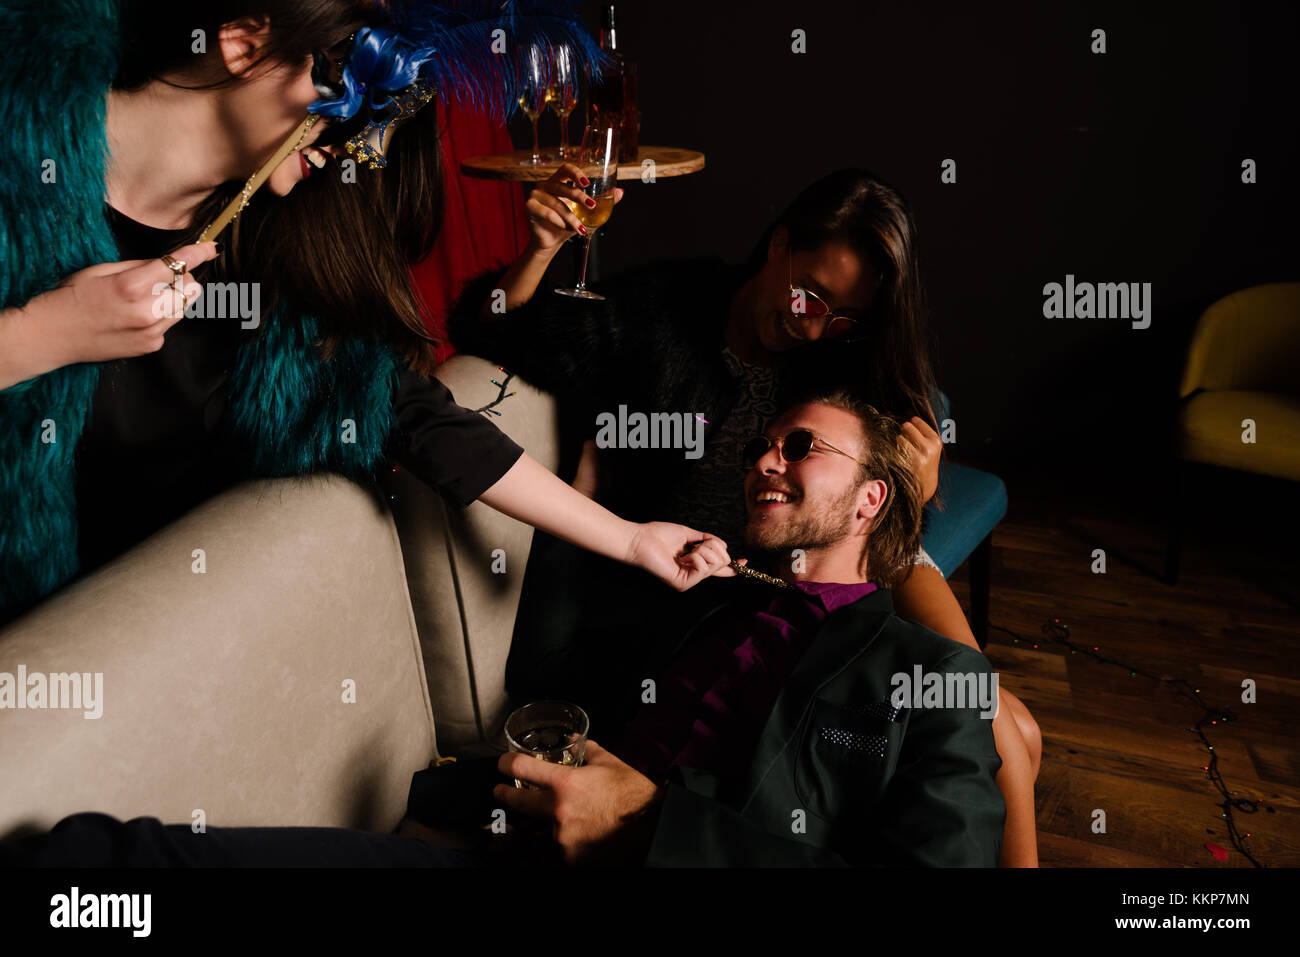 Masked woman seducing a couple at a party - Stock Image